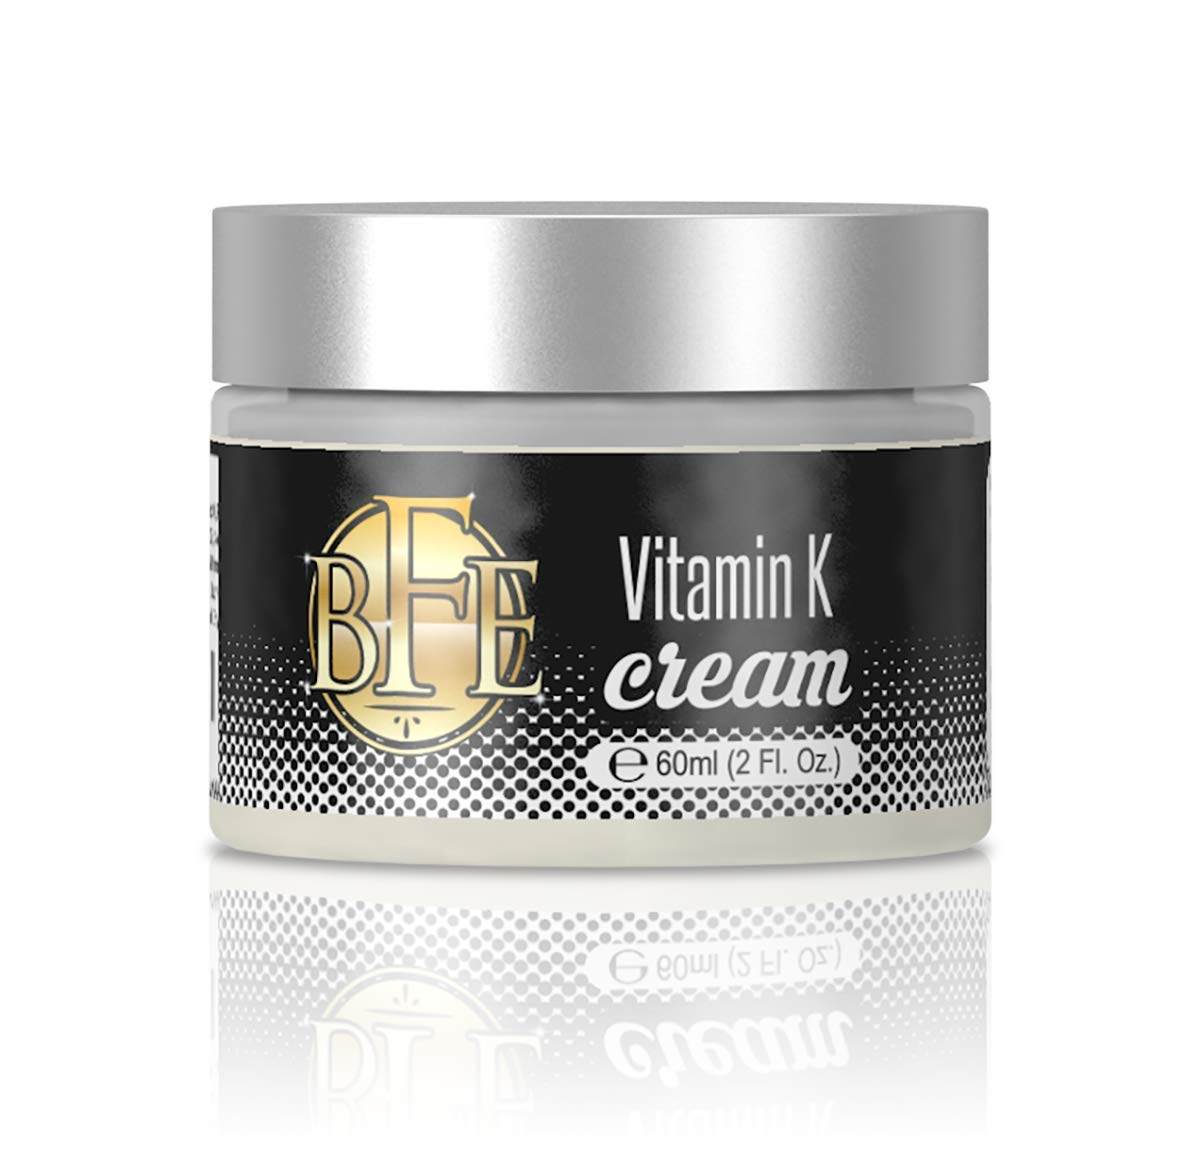 BFE Vitamin K Cream - Moisturizing Bruise Healing Formula. Reduces Under Eye Dark Circles, Dark Spot Corrector